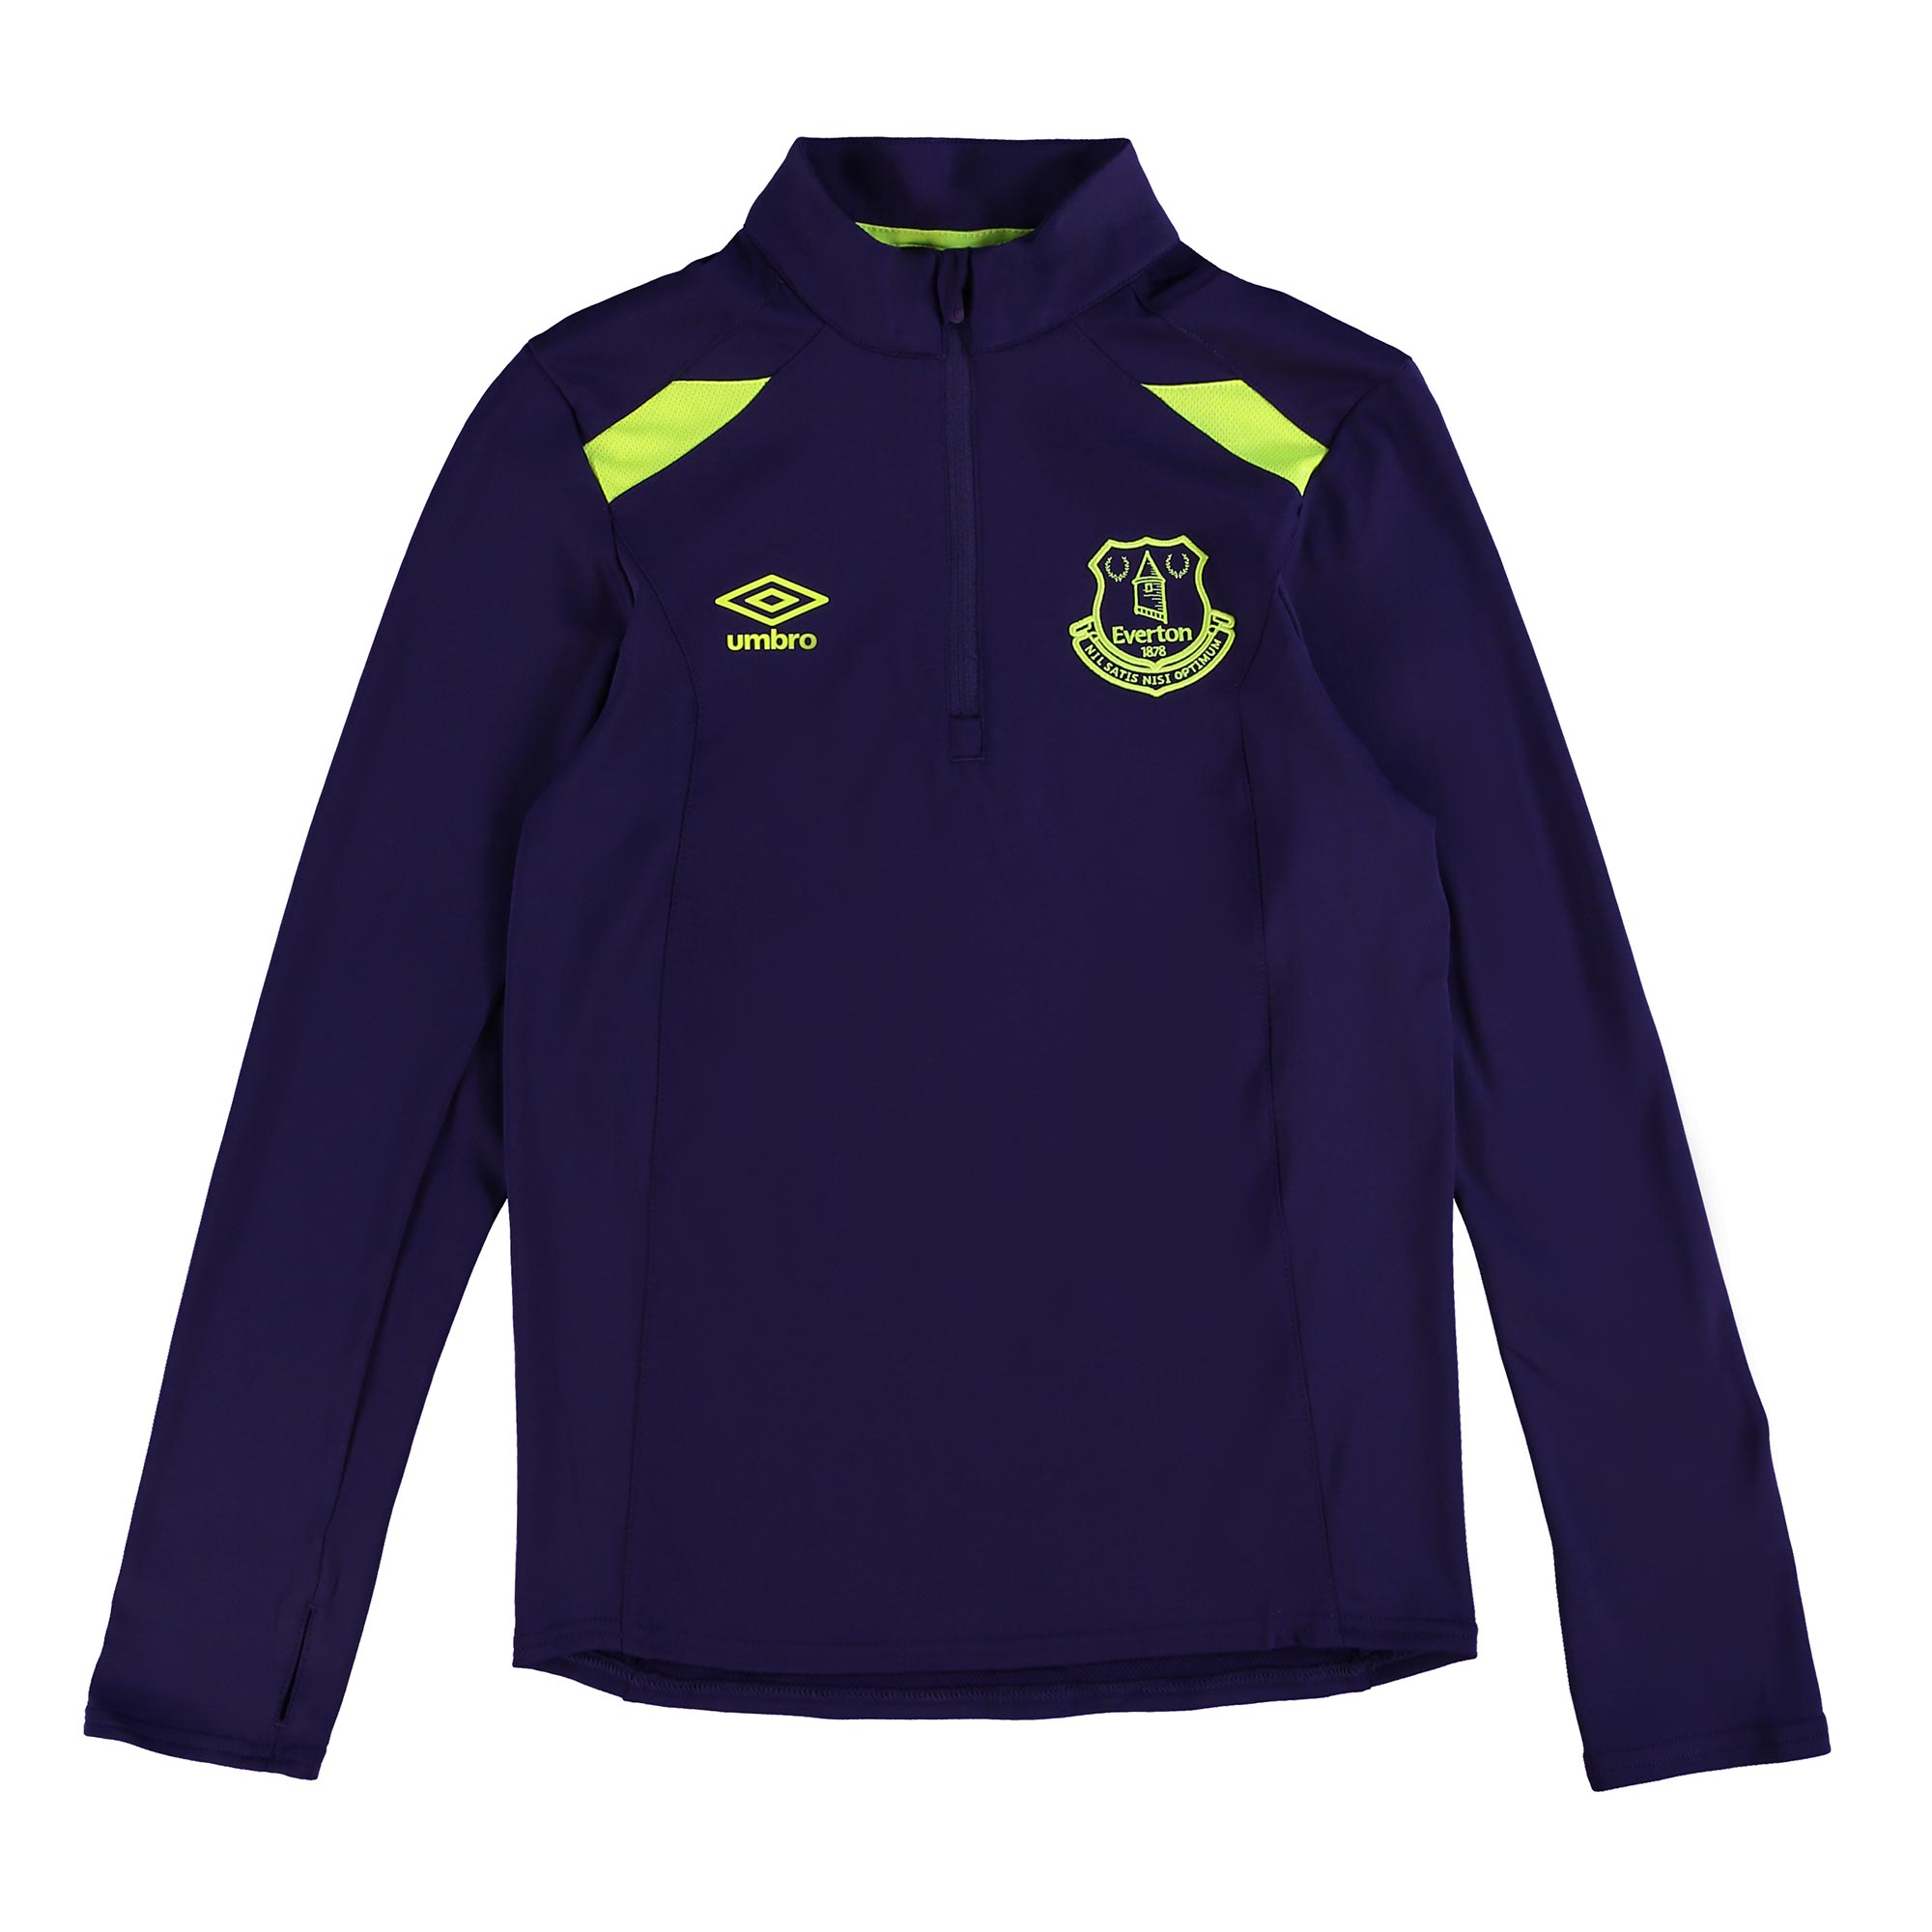 Everton Training Half Zip Top - Junior - Parachute Purple/Safety Yello